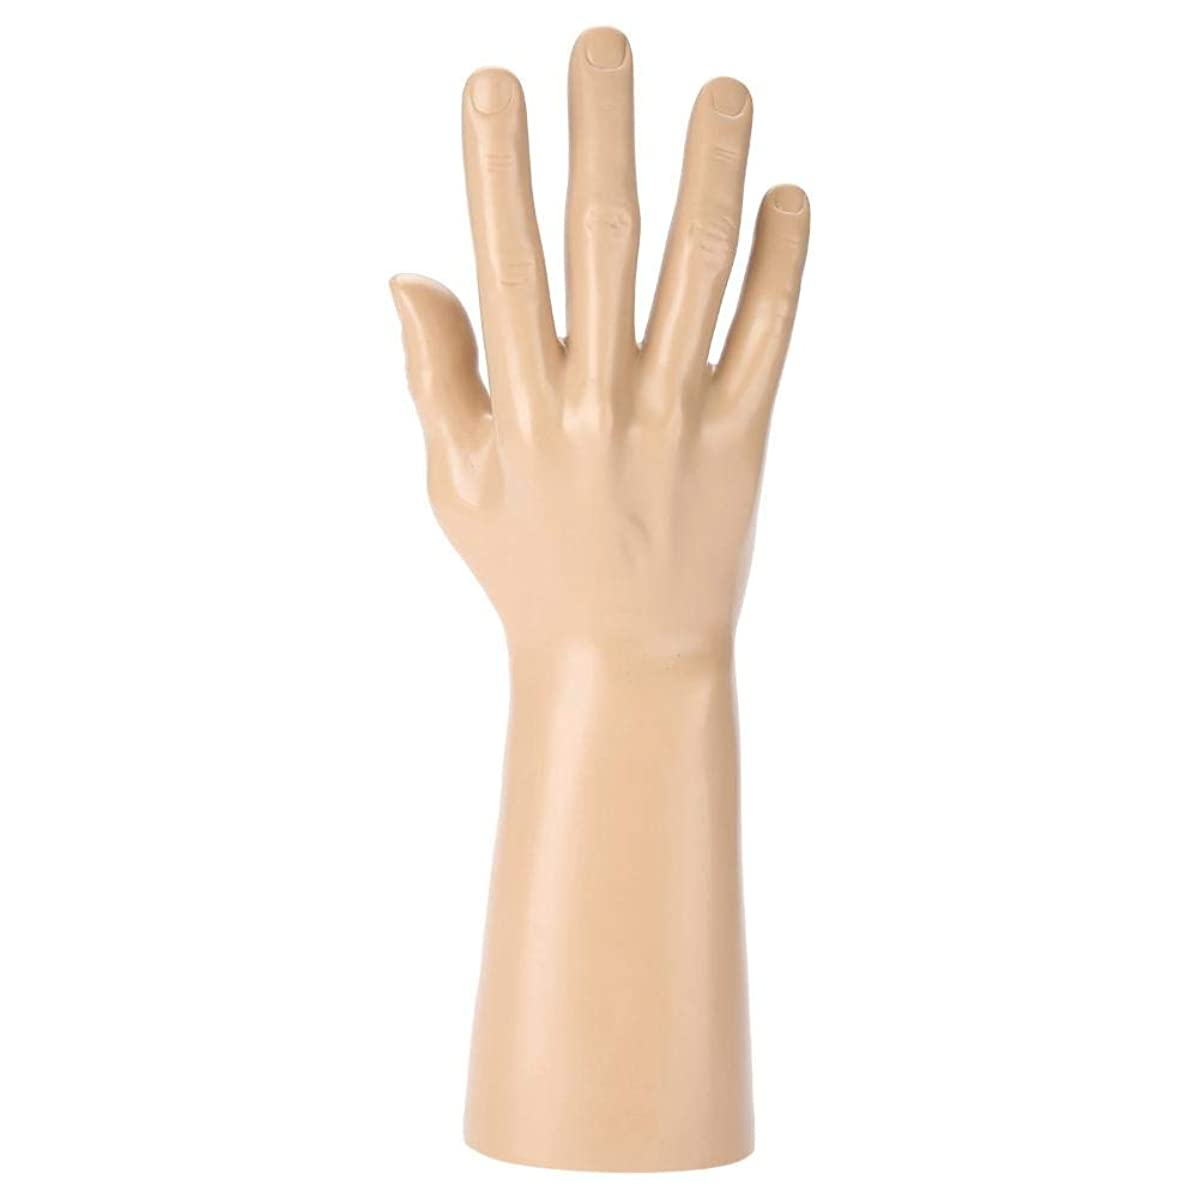 High Simulated Male Hand Model Mannequin Hand for Ring Gloves Bracelets Jewelry Display, Creative Rosary Frame Hand Model Display